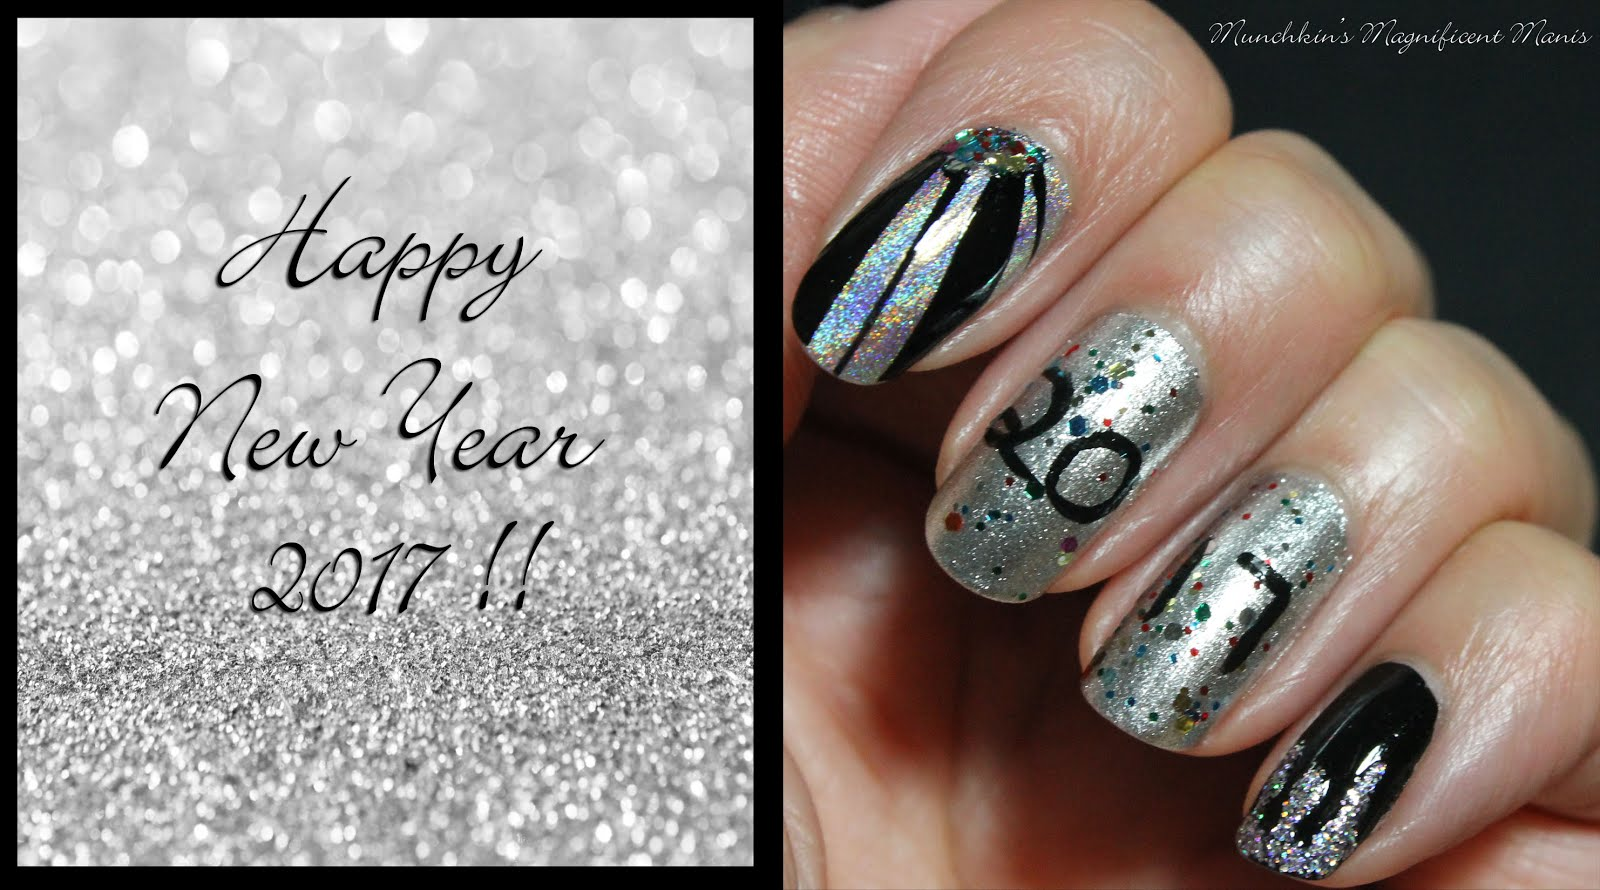 Munchkins Magnificent Manis New Year New Beginnings New Year